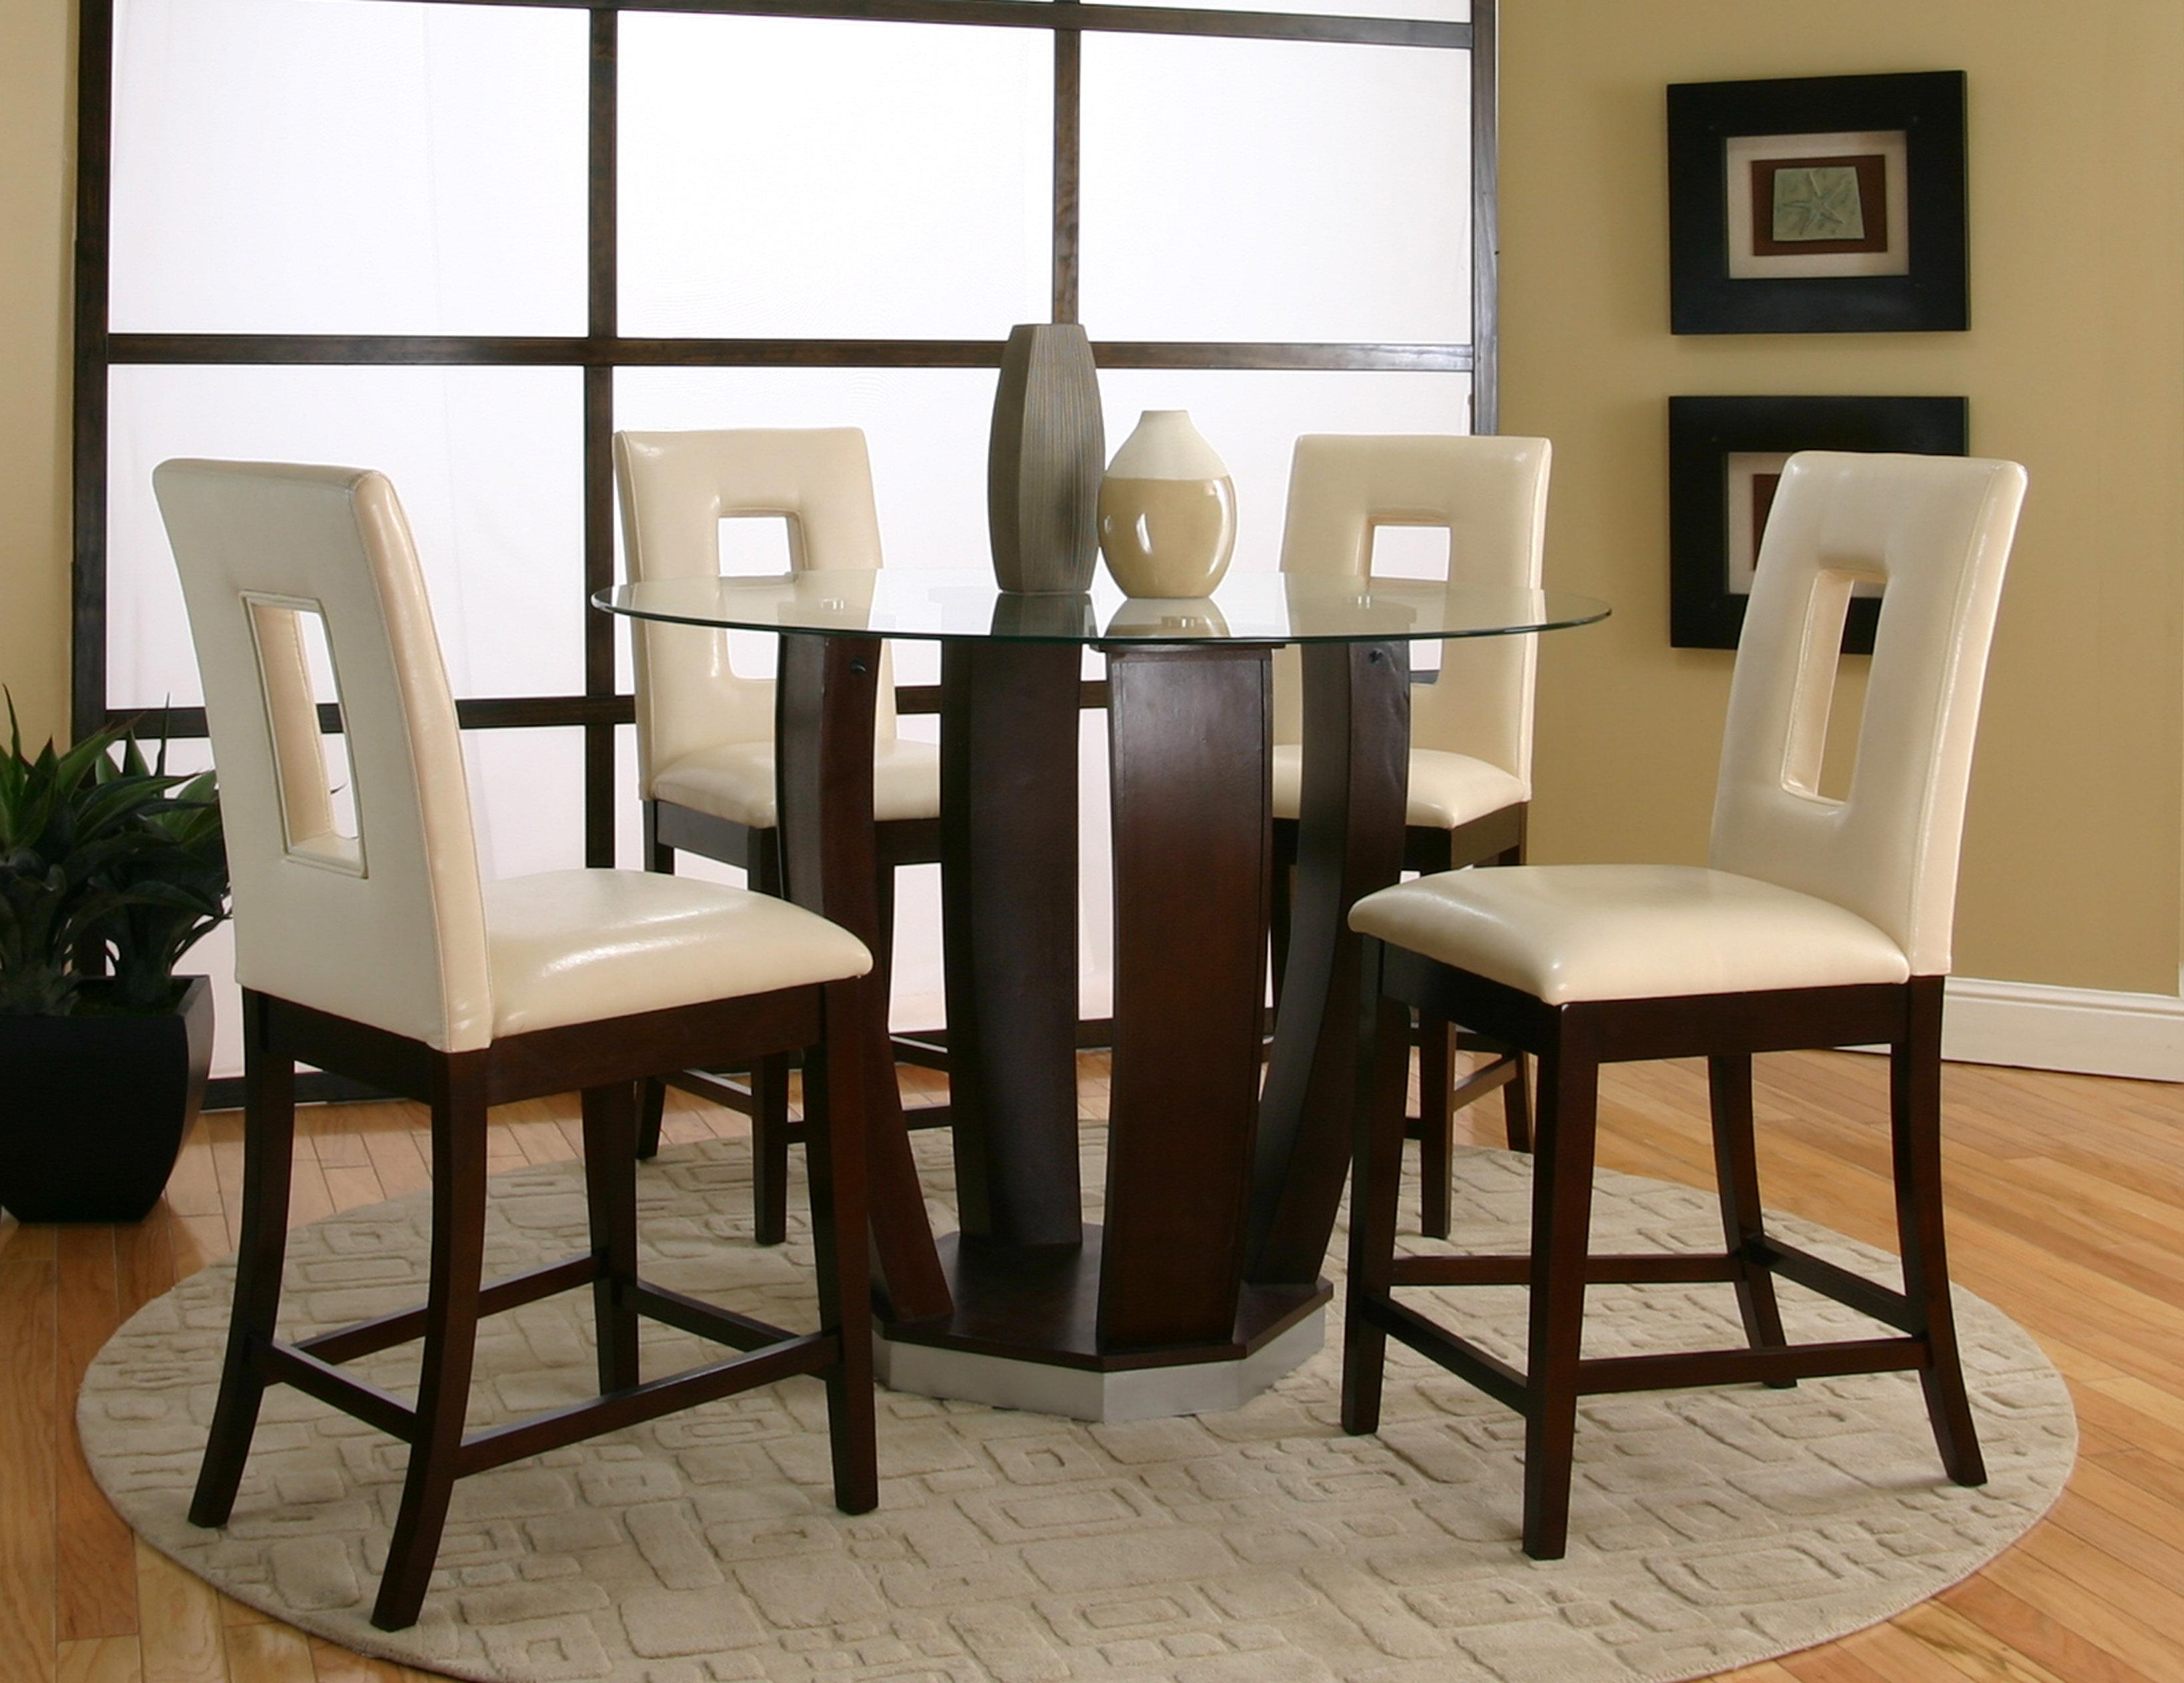 Cramco inc contemporary design emerson round tempered for High top table designs